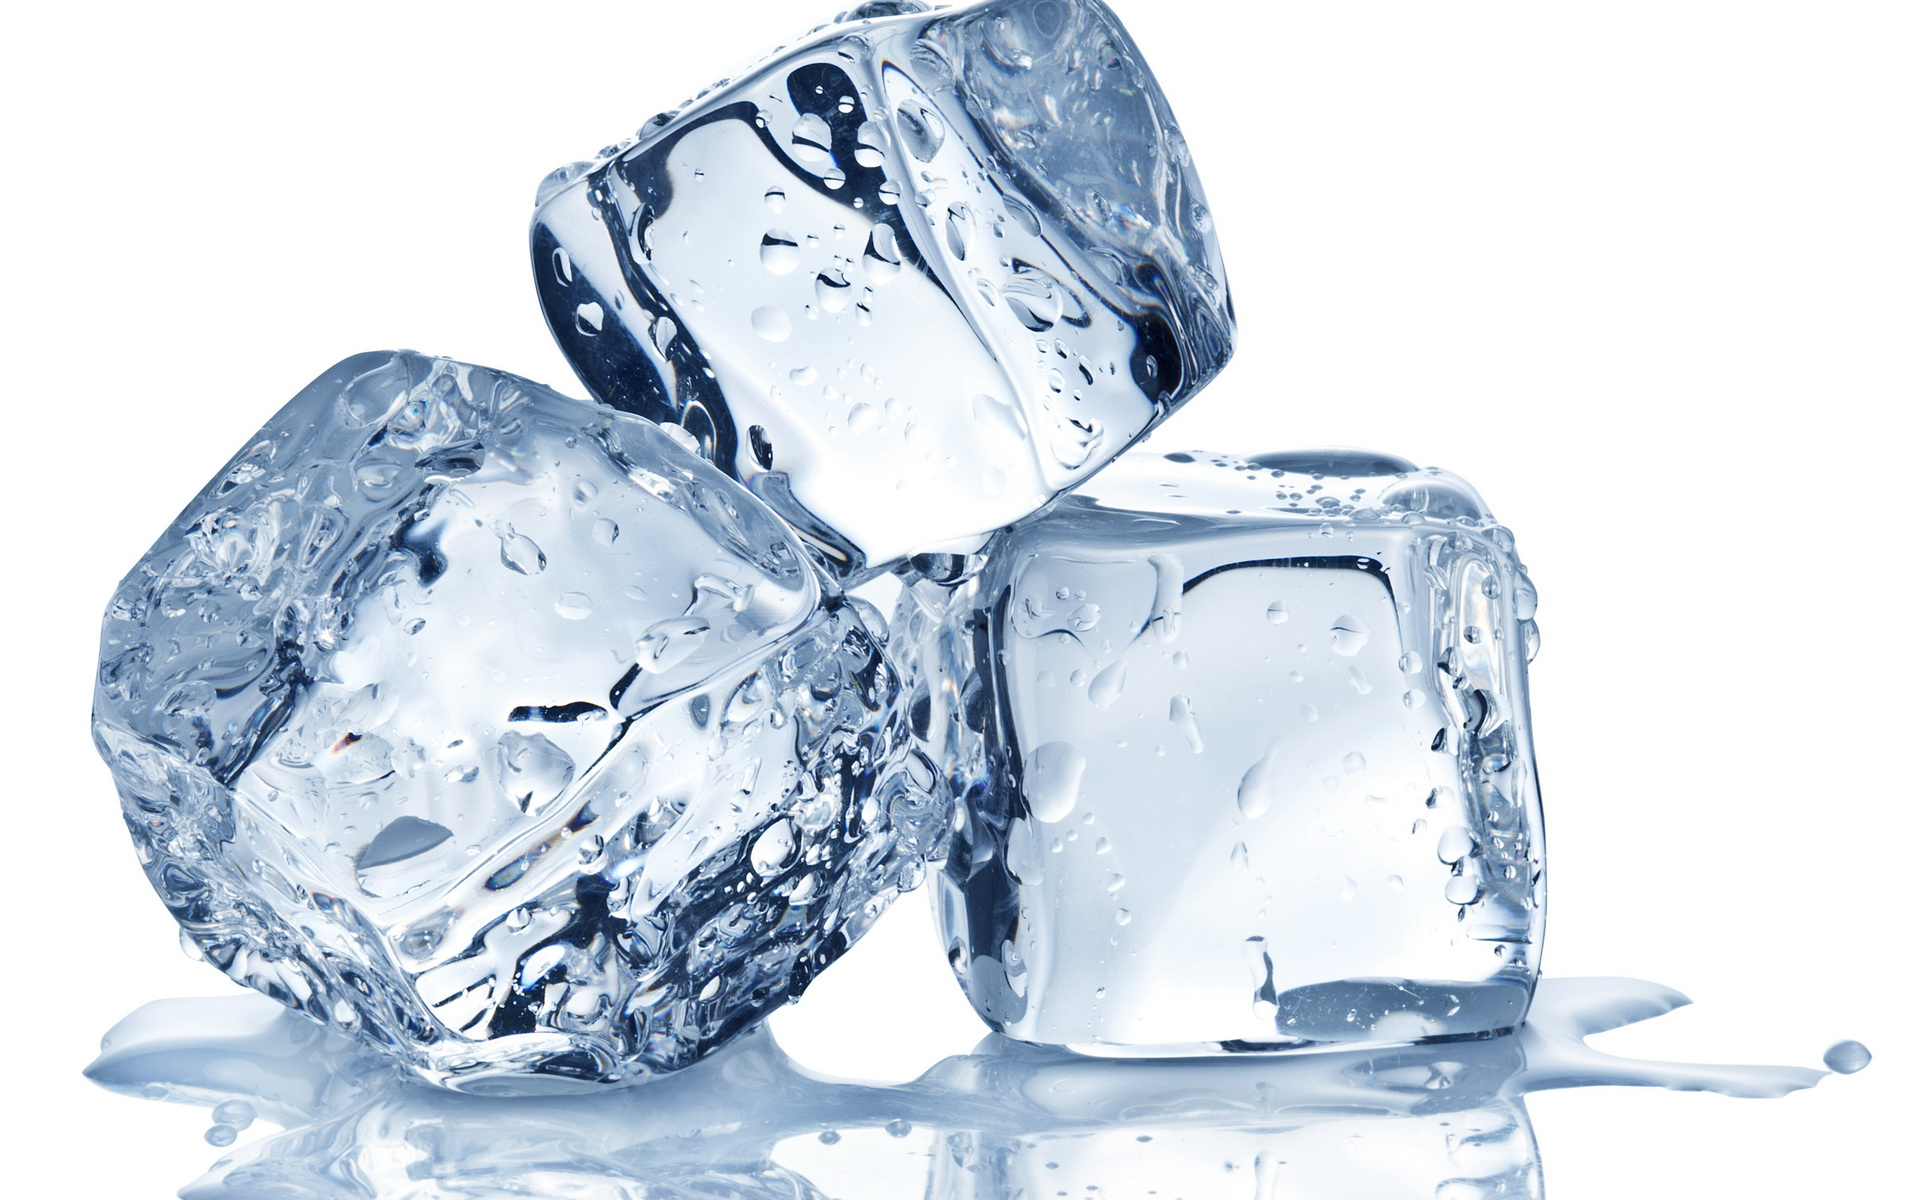 Ice or cold treatments